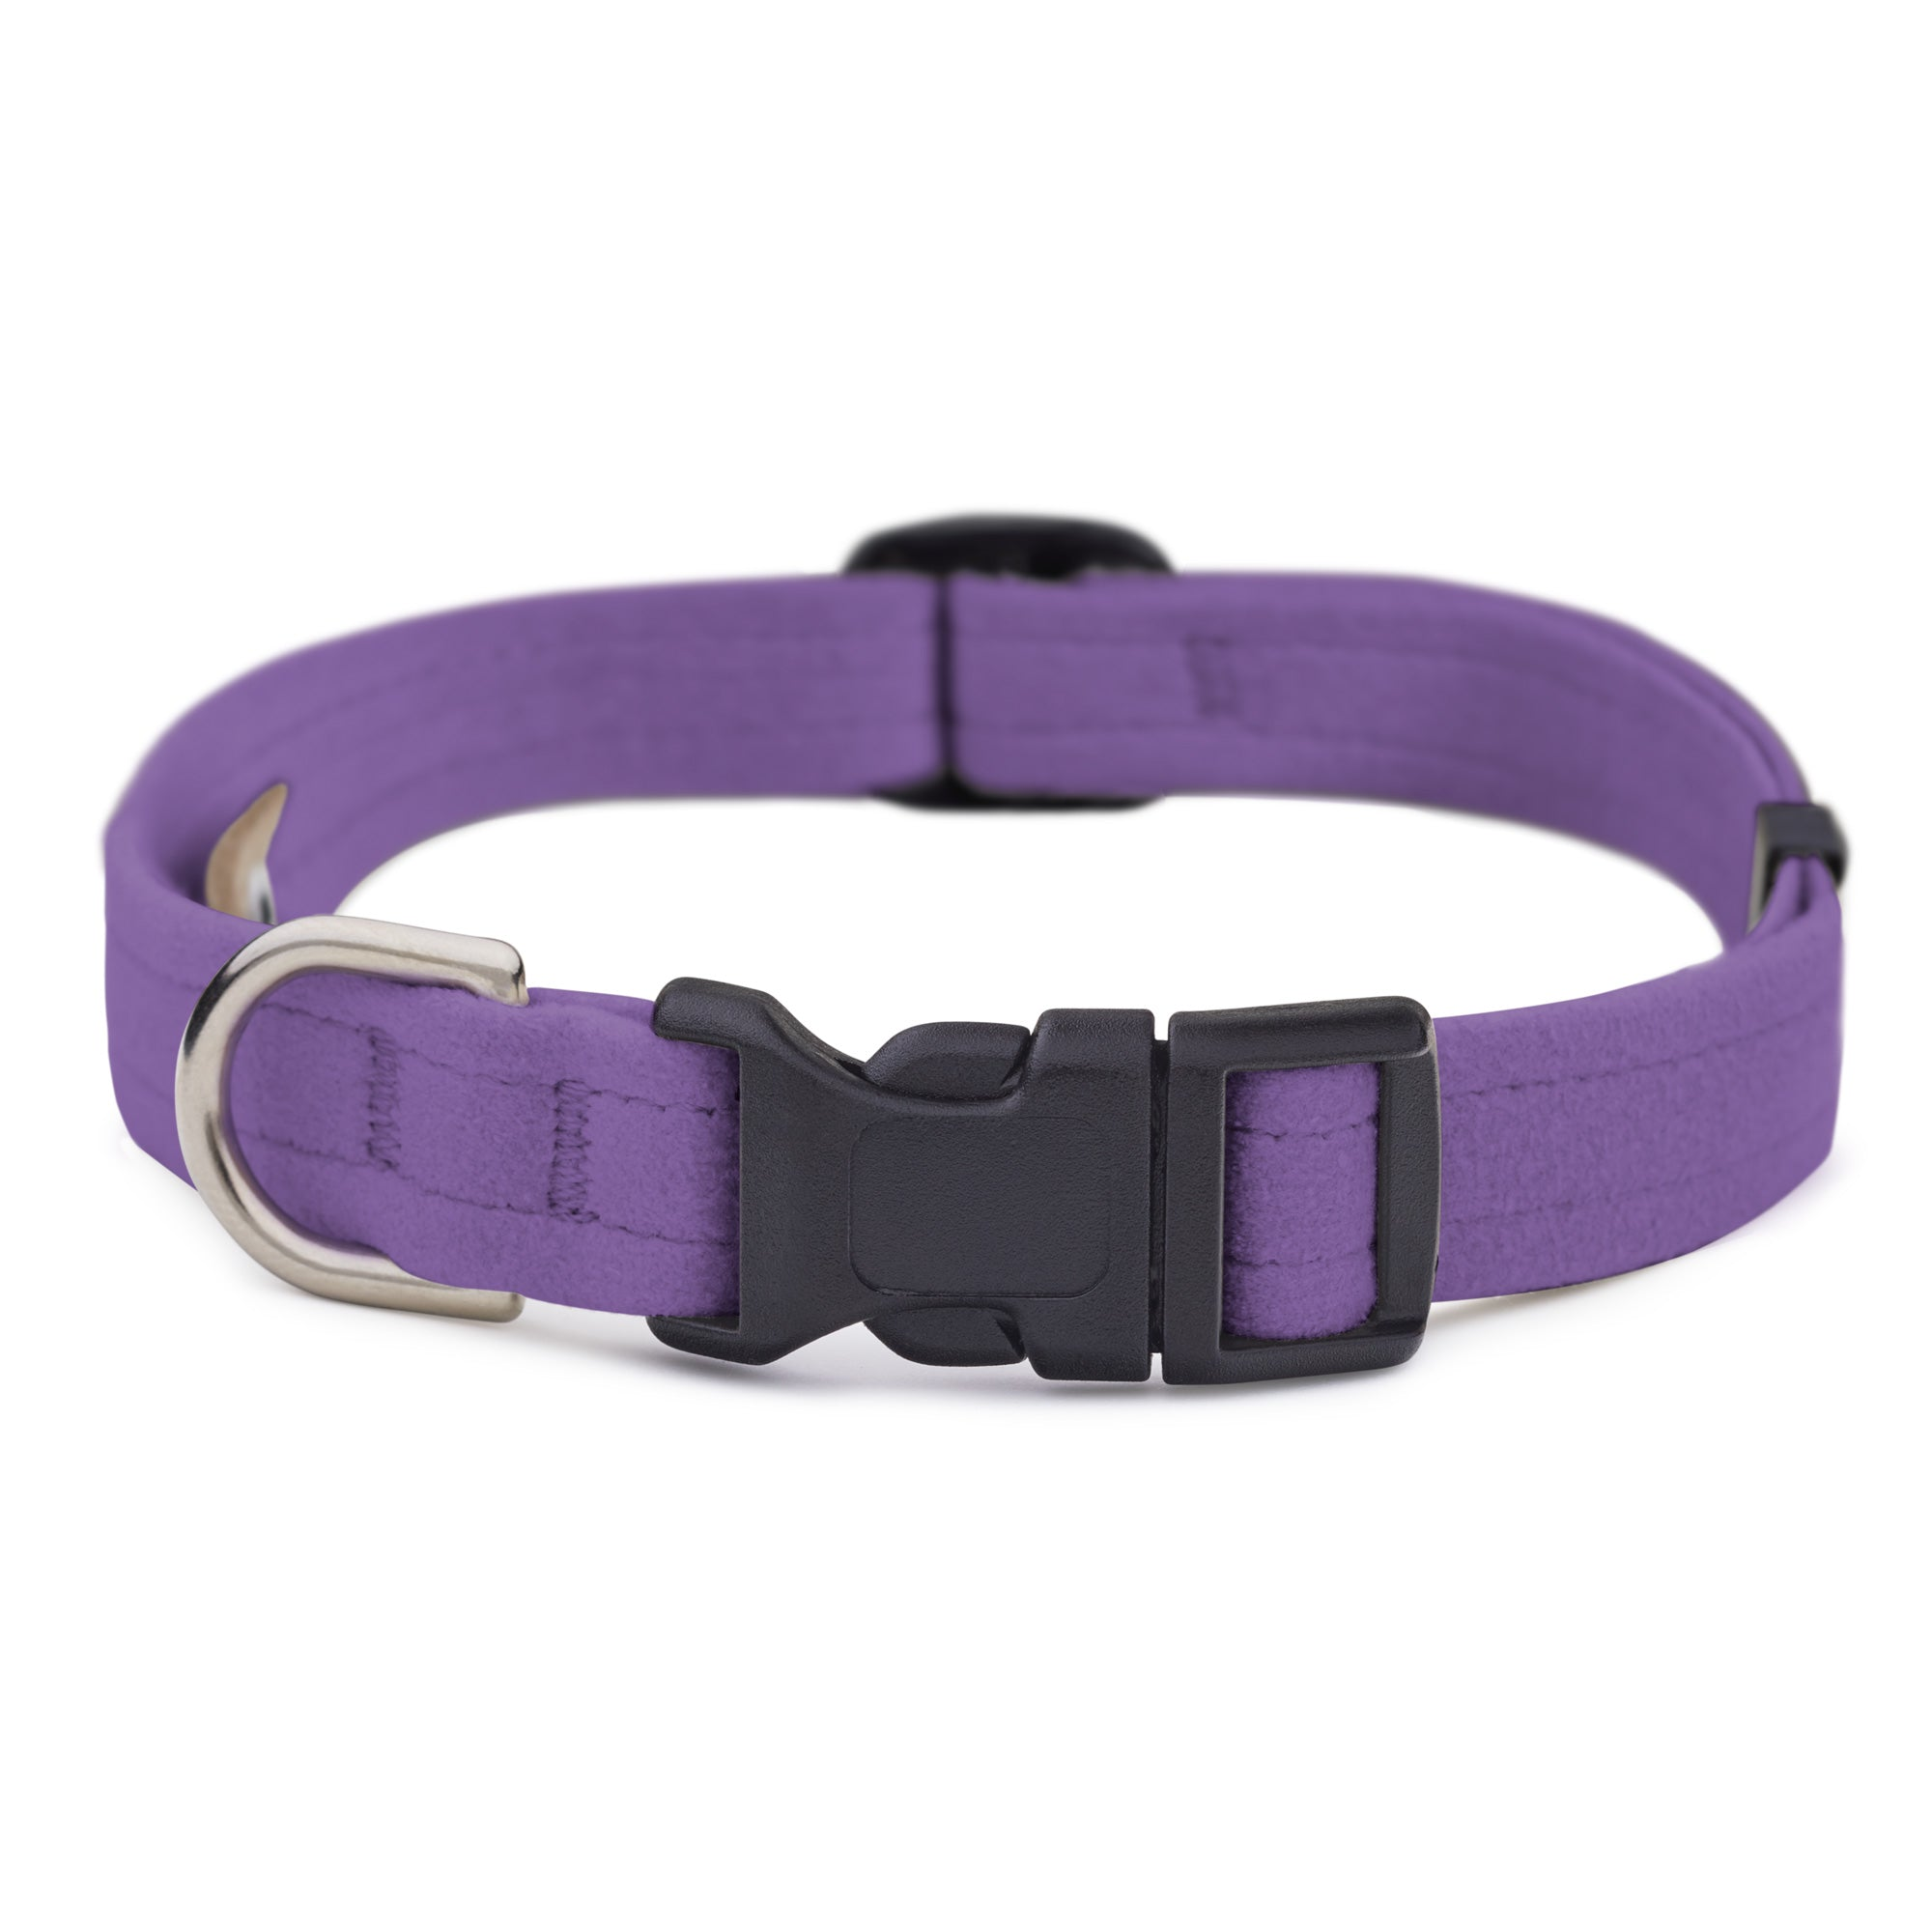 Ultraviolet Quick Release Collar